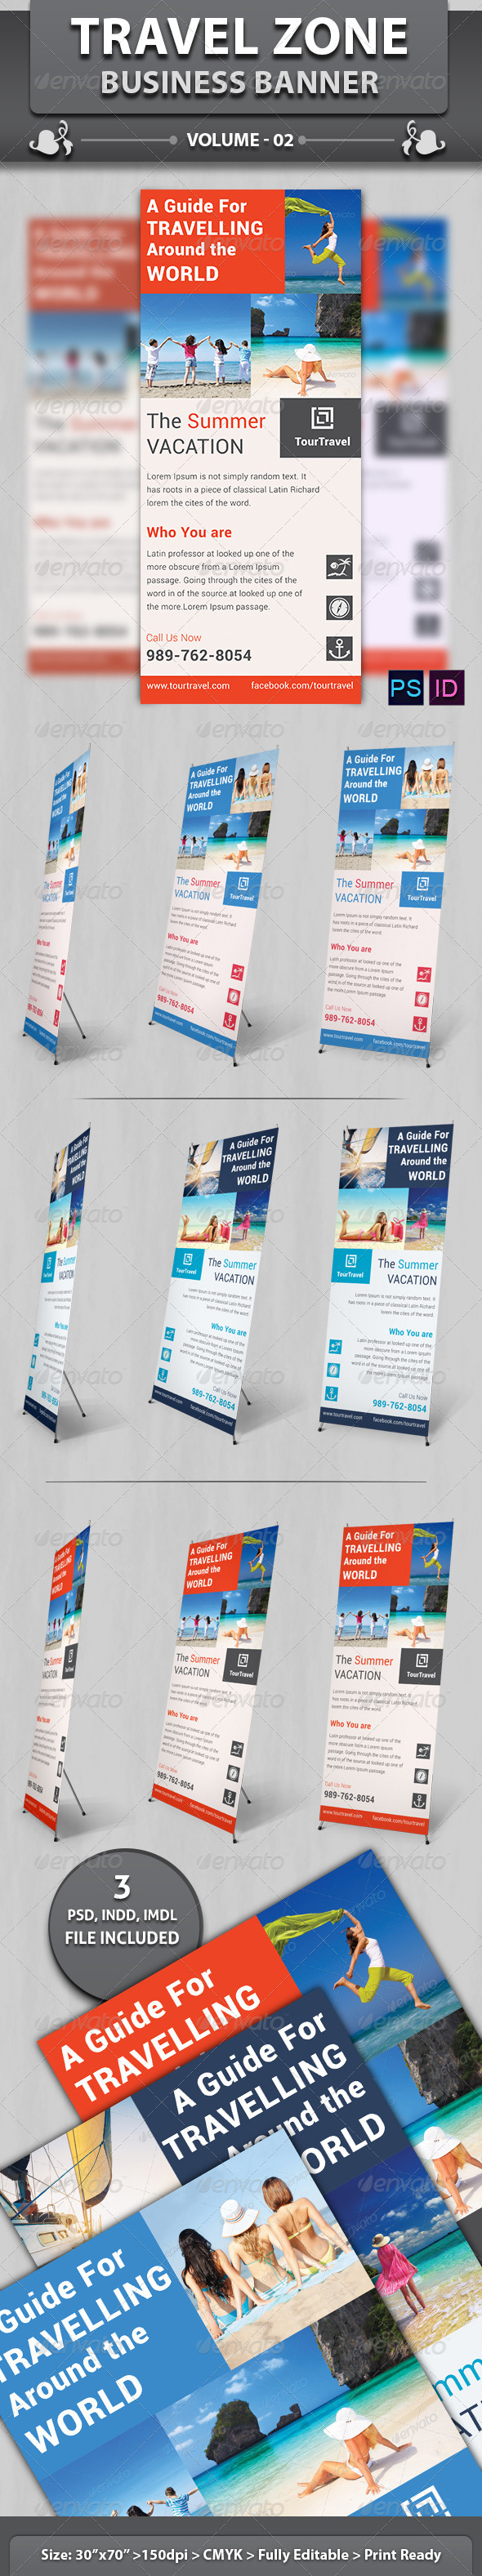 Travel / Touriasm Business Banner | Volume 2 - Signage Print Templates